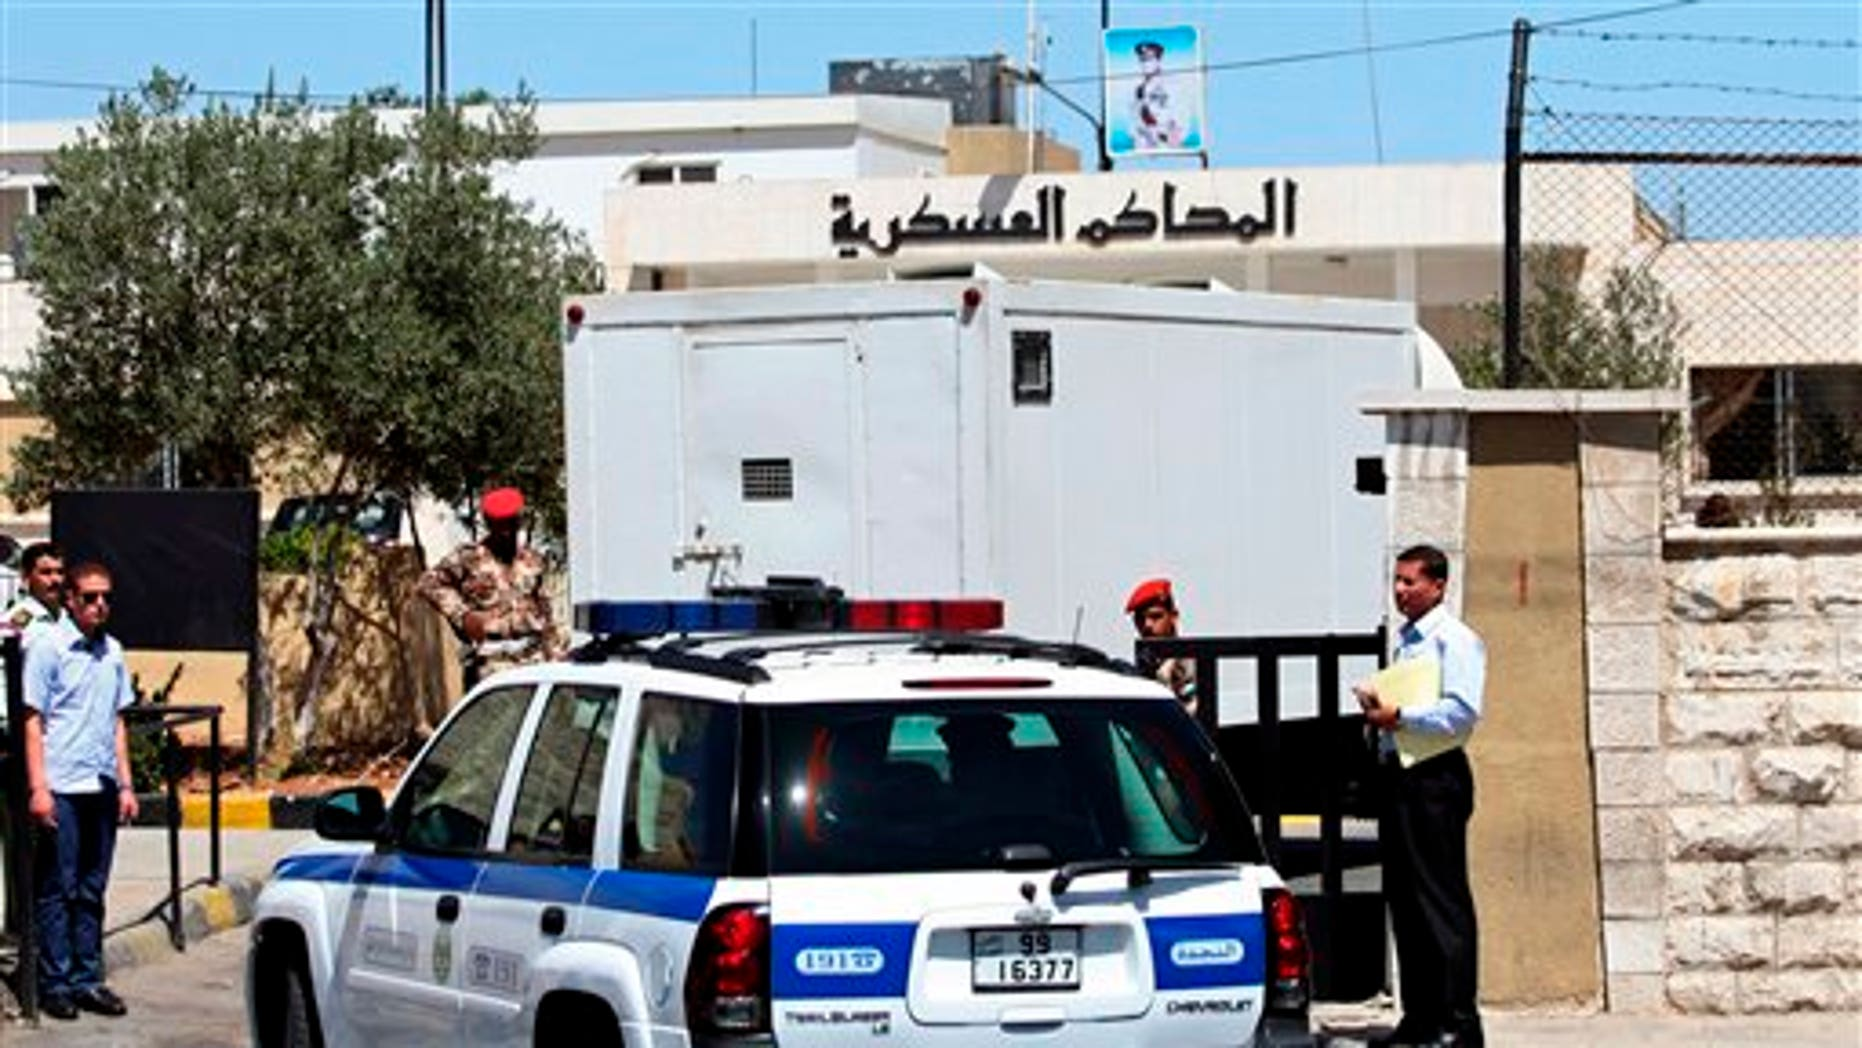 July 28: A prison van carrying Sheik Abu-Mohammed al-Maqdisi is escorted by police vehicles to a military court in Amman, Jordan.